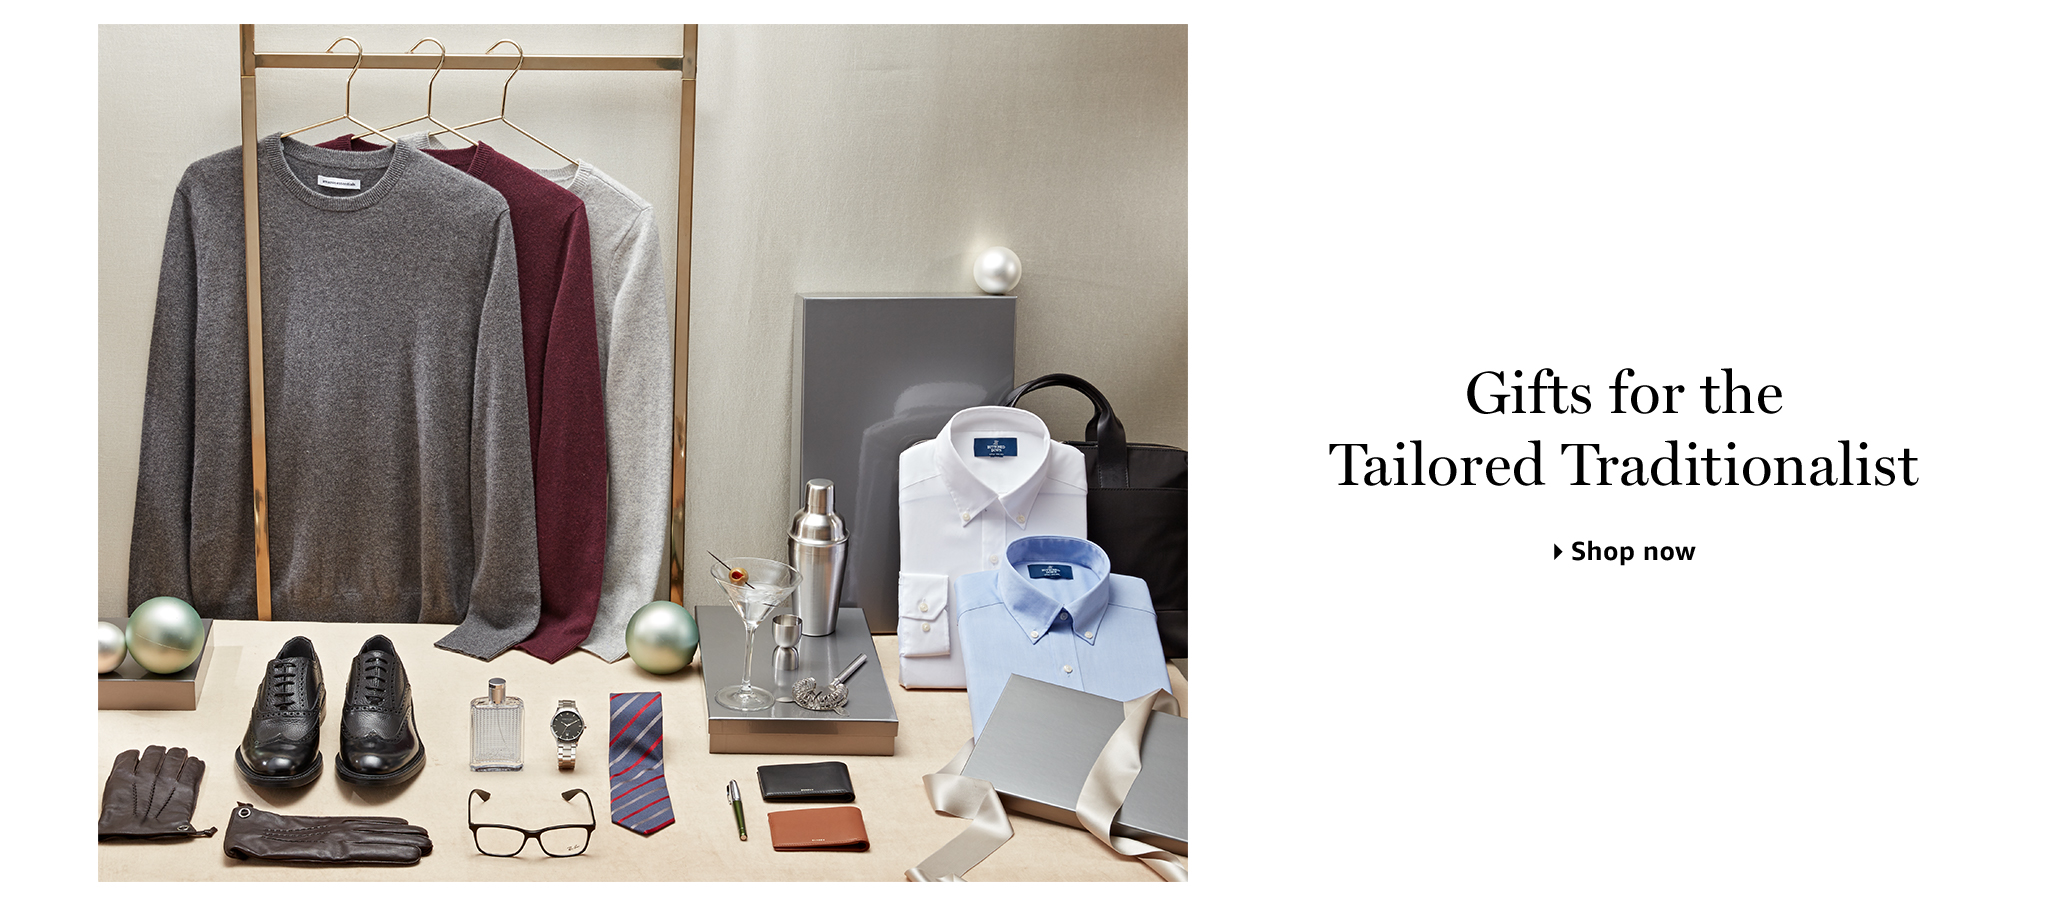 Gifts for the Tailored Traditionalist